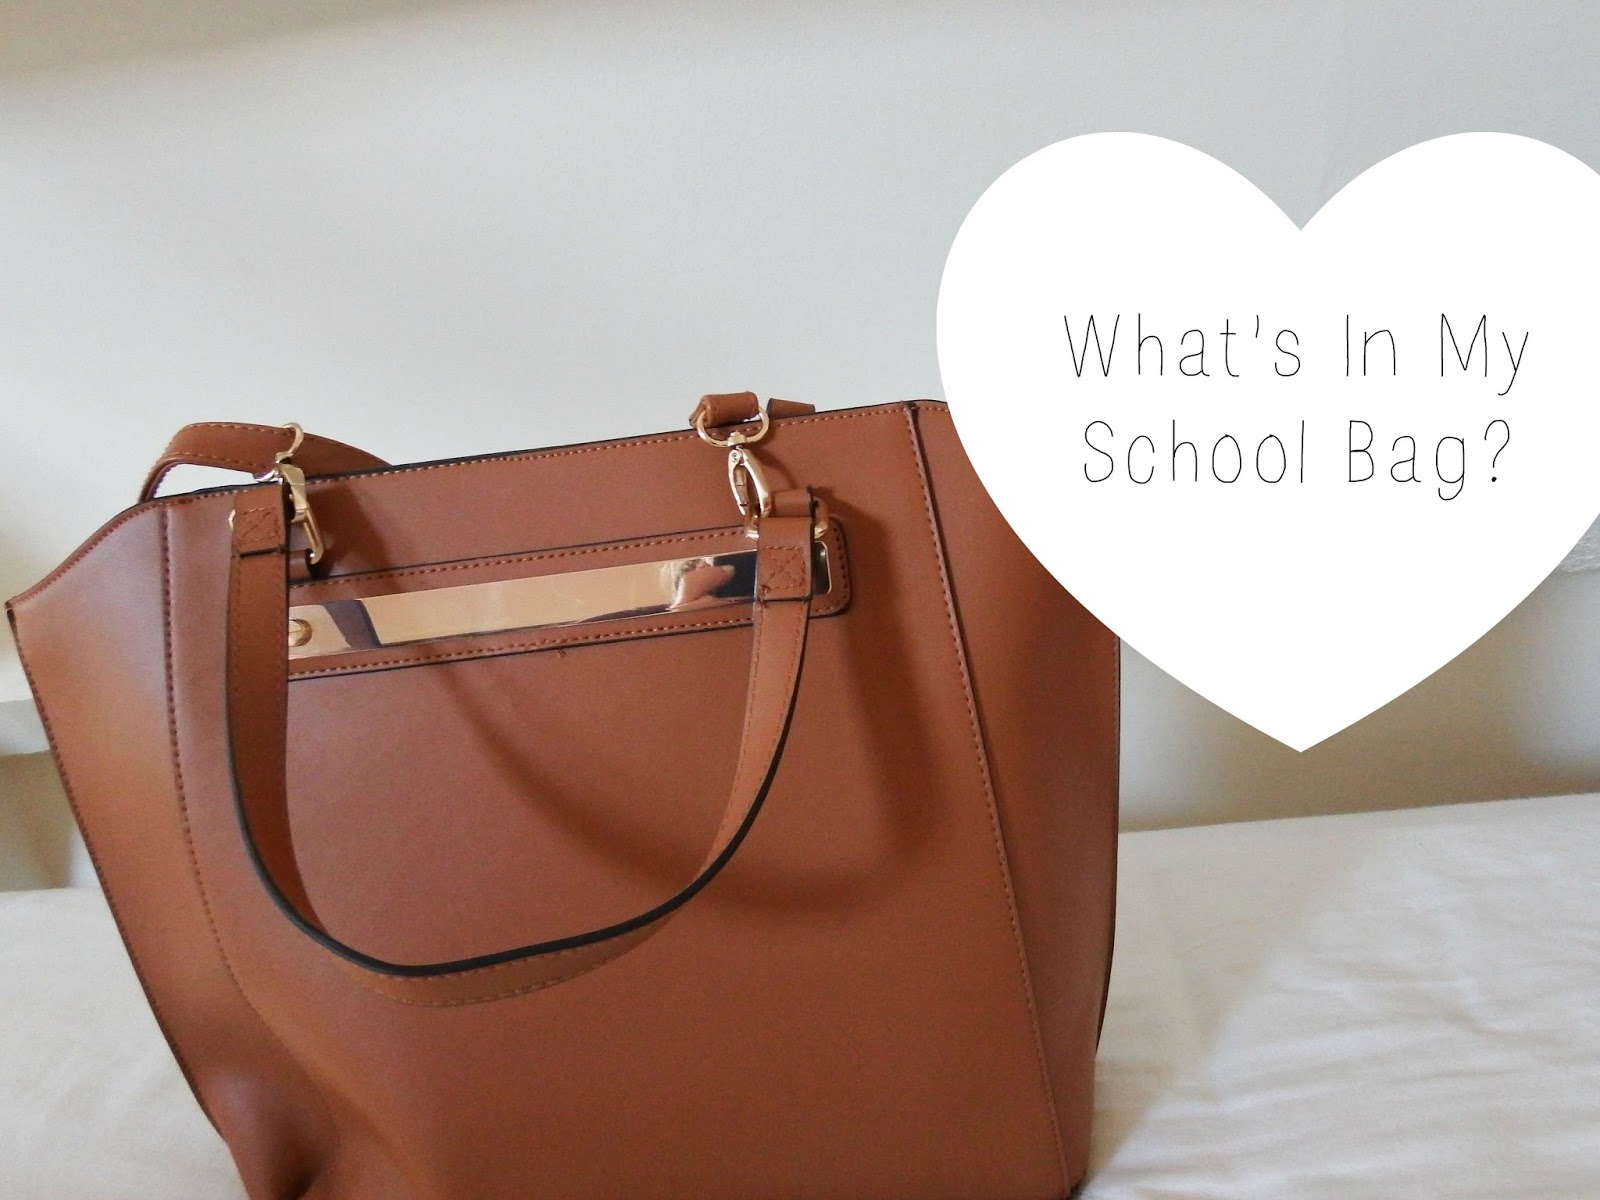 School bag for year 7 - Today I Have The Last Back To School Post In My Little Series And That Is A What S In My School Bag My School Bag This Year Is From Matalan And It